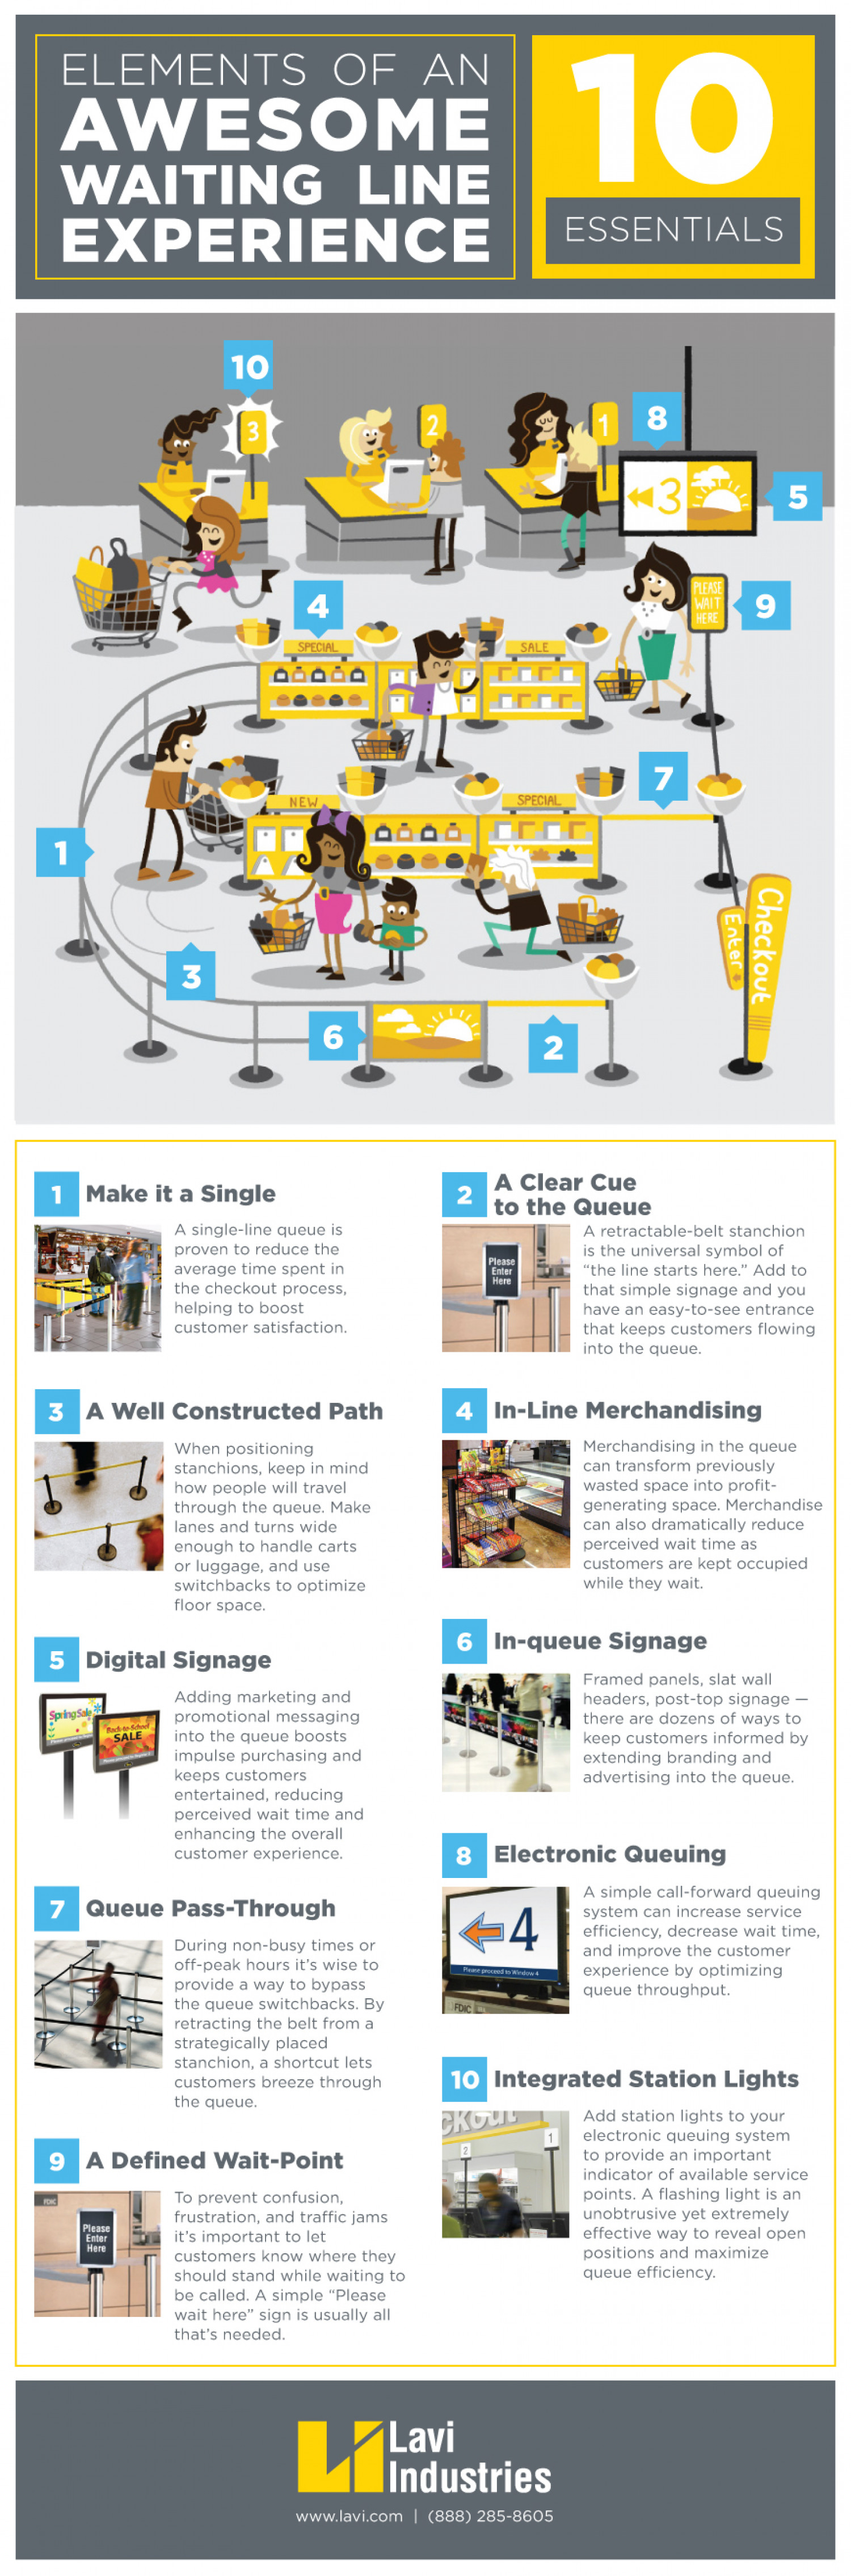 10 Elements of an Awesome Waiting Line Experience Infographic